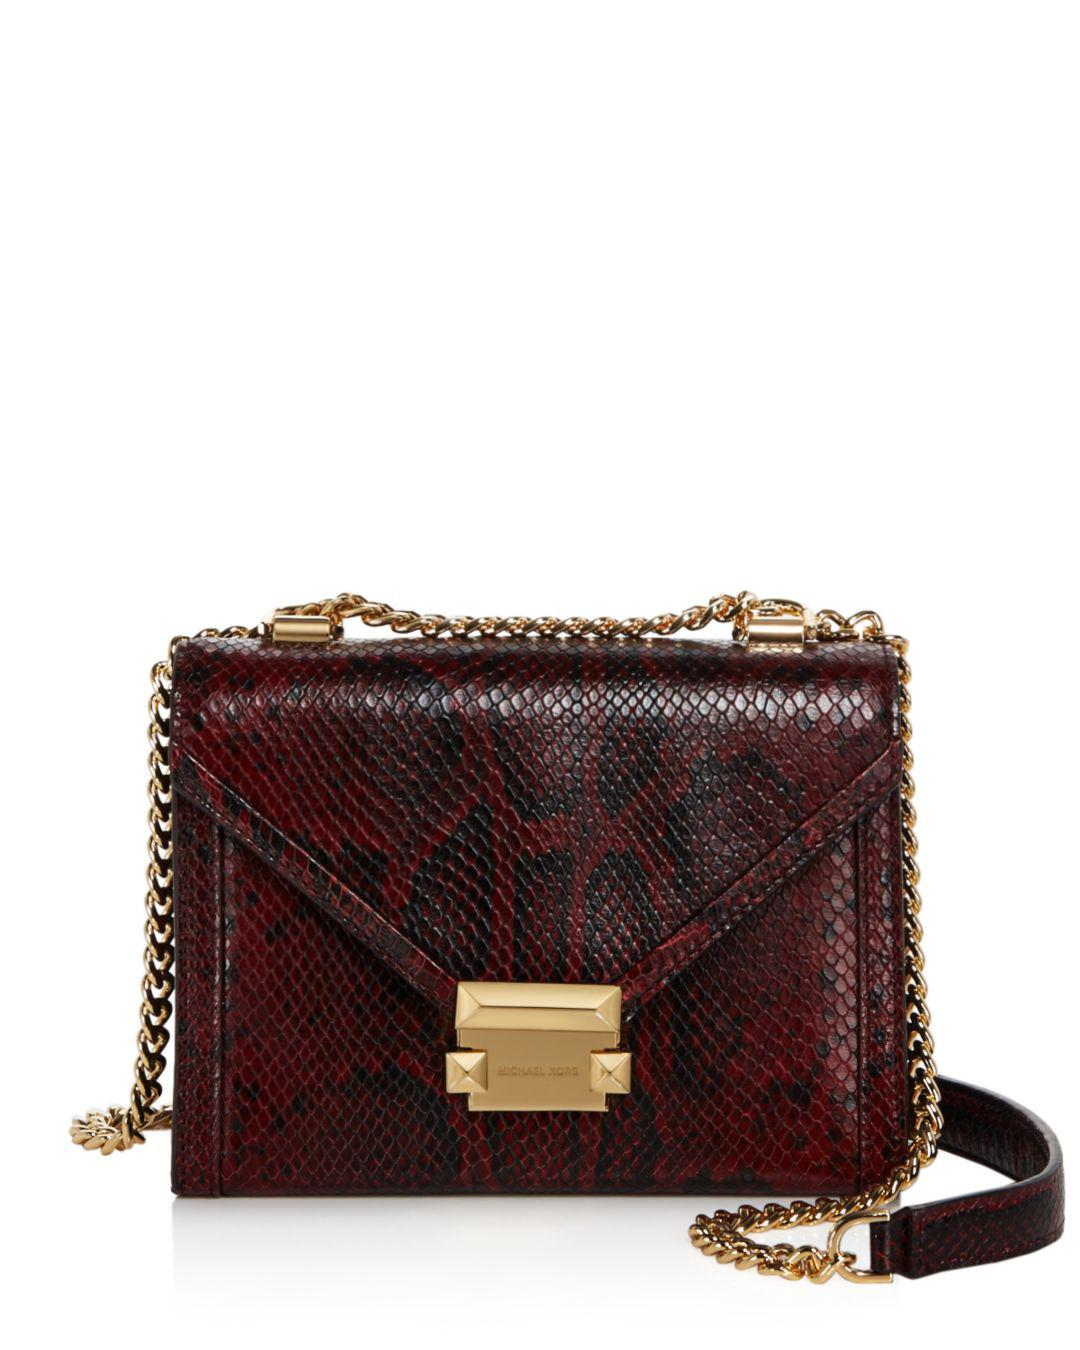 627689f0be9b MICHAEL Michael Kors. Women s Whitney Small Leather Shoulder Bag